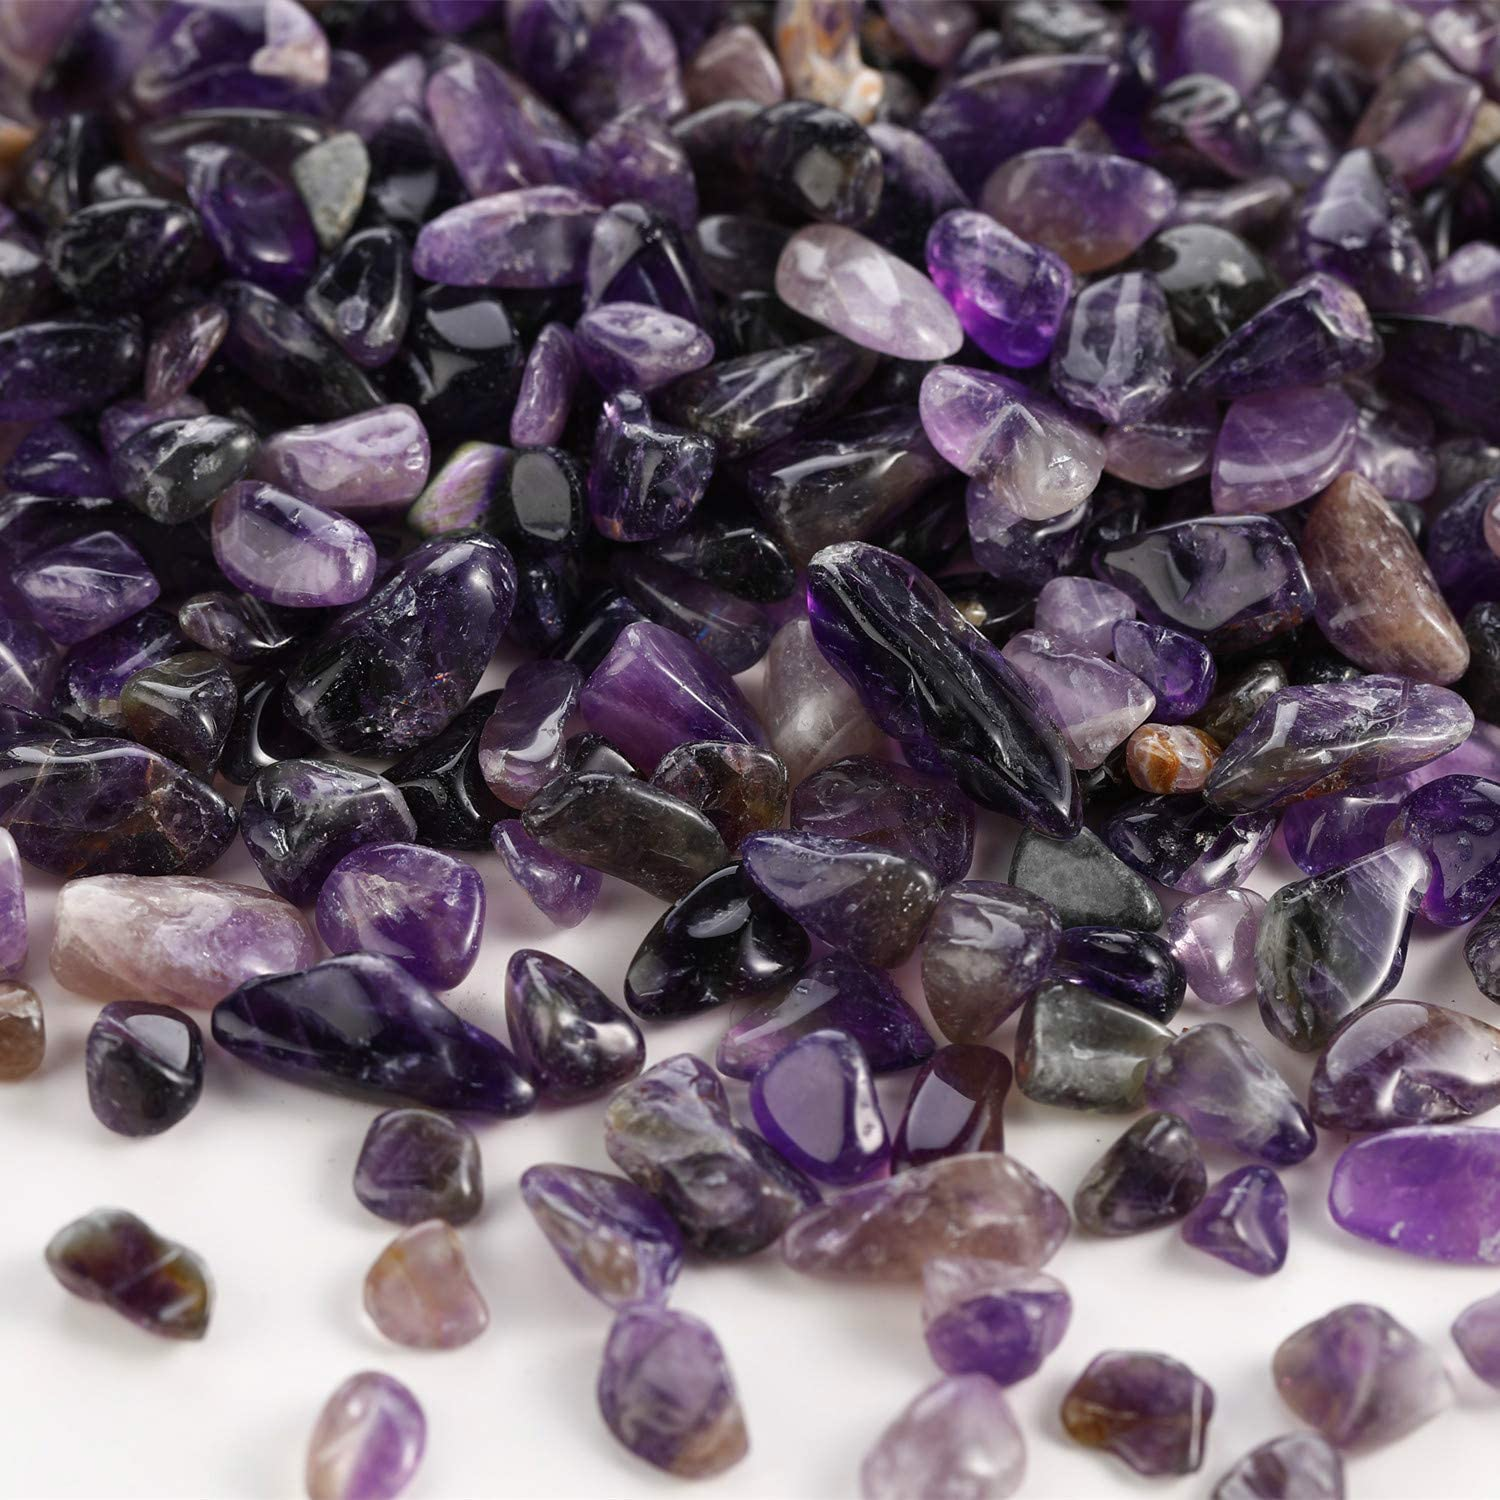 Zenkeeper 1Lb Amethyst Chip Healing Stones Crystals Authentic Crushed Tumbled Stones for Home Decoration, Air Plants, Roller Bottles